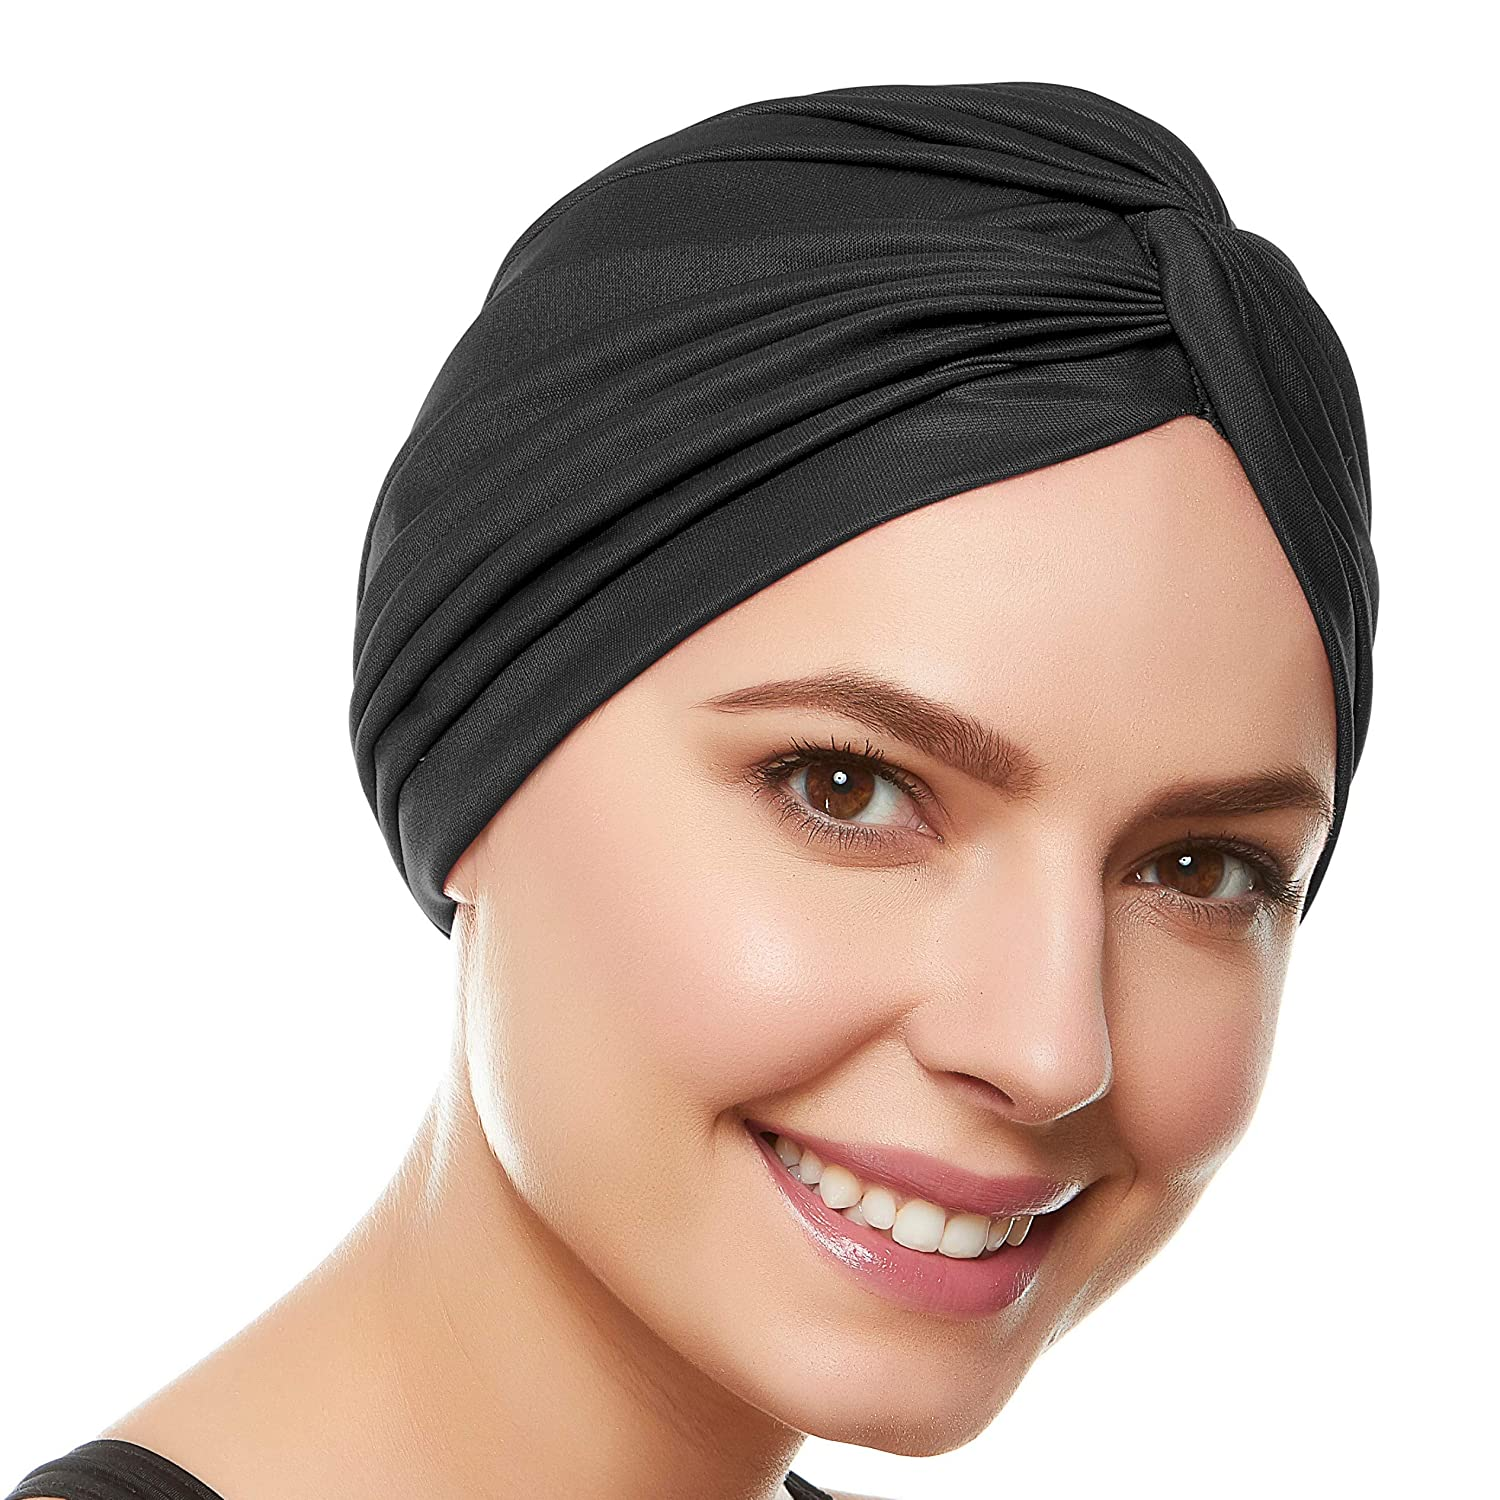 610737f1ee6 Amazon.com  Beemo Polyester Twisted Pleated Turban Head Cover - Black   Clothing